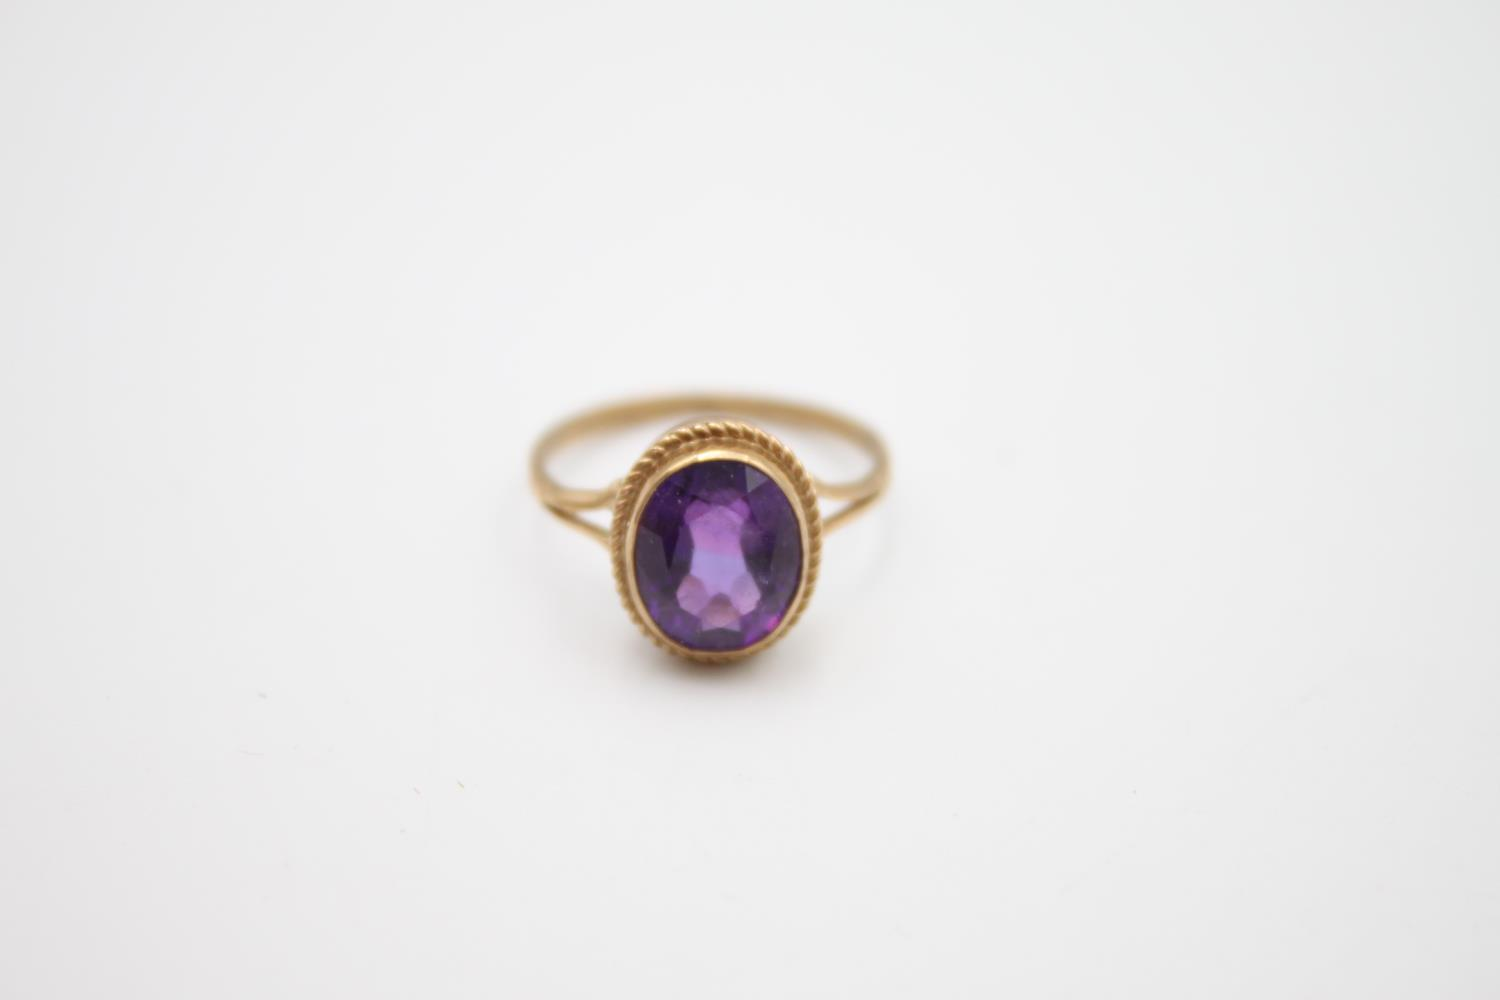 2 x 9ct gold amethyst rings inc modernist, solitaire 4.6g Size L & N - Image 5 of 6